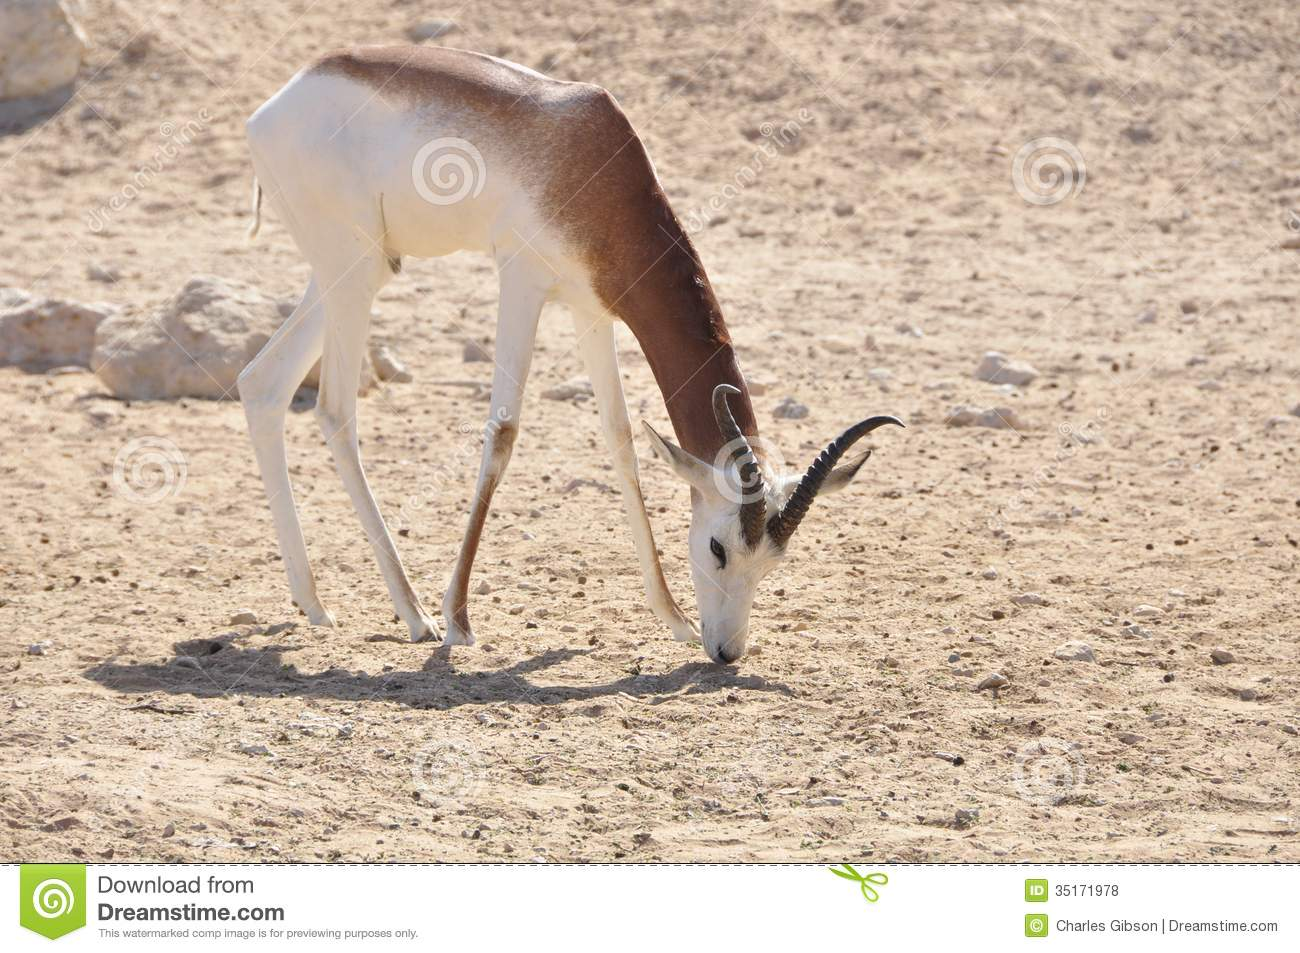 middle eastern singles in gazelle One of the more neglected parts of the bible is the song of songs (also called the song of solomon)  right in the middle of  my beloved is like a gazelle or.